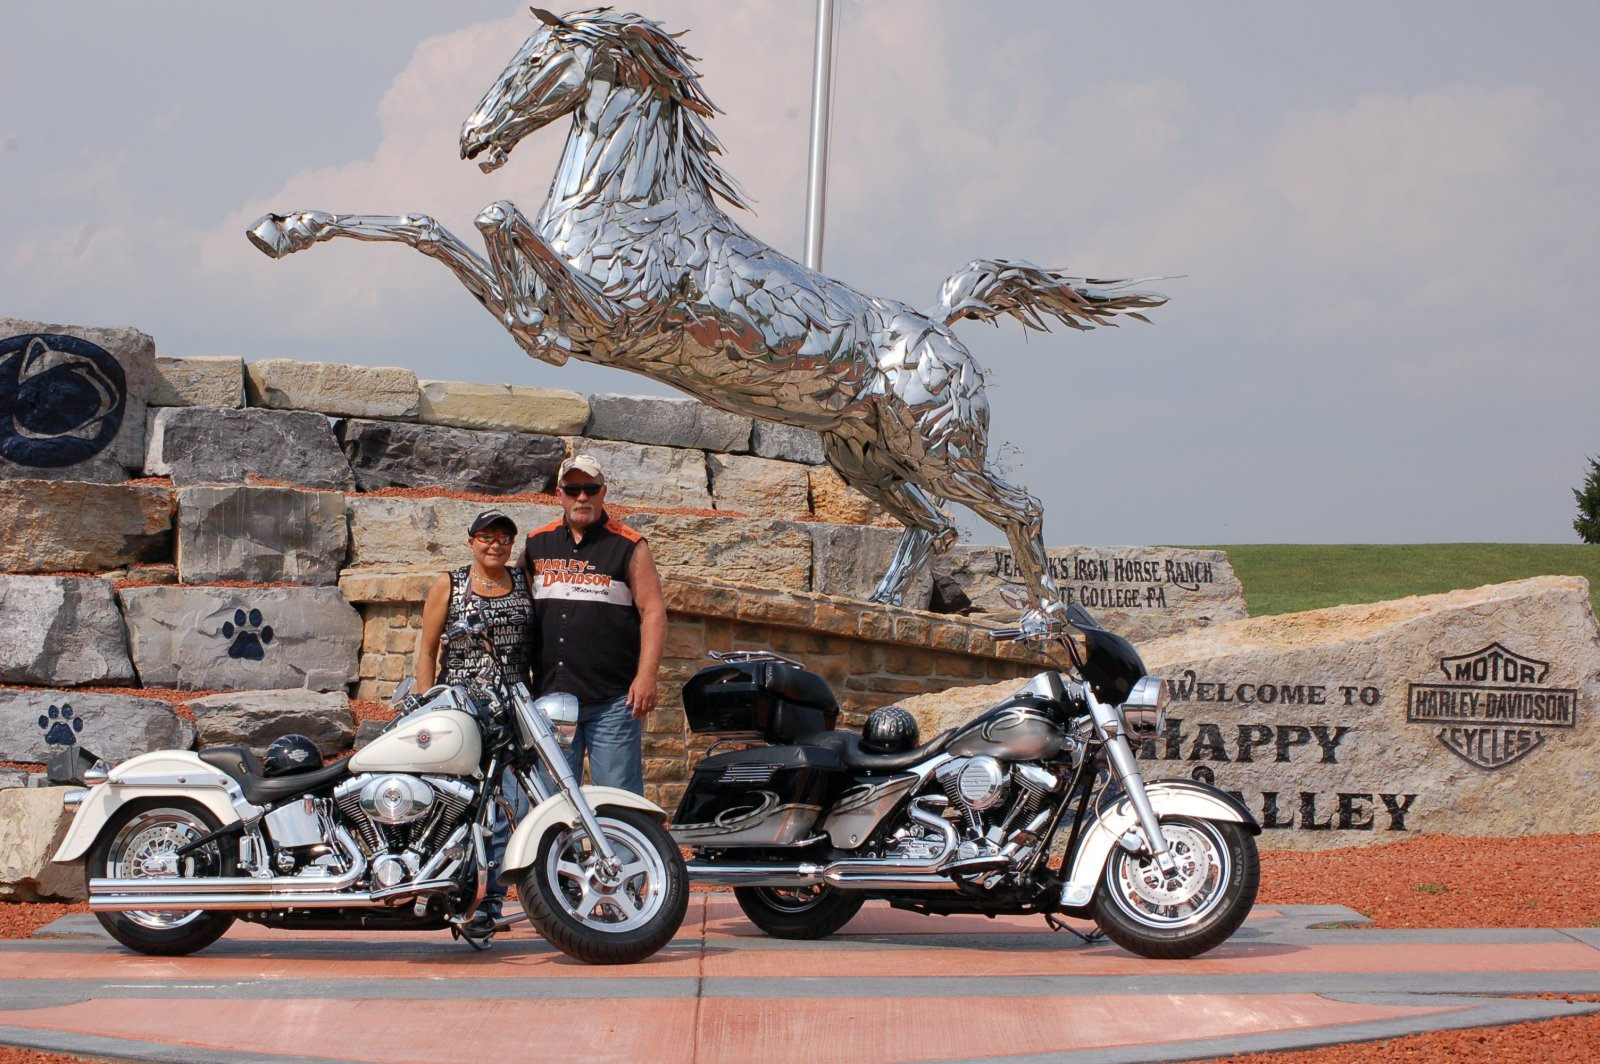 Click image for larger version  Name:State college Ride 020.jpg Views:55 Size:362.2 KB ID:30124